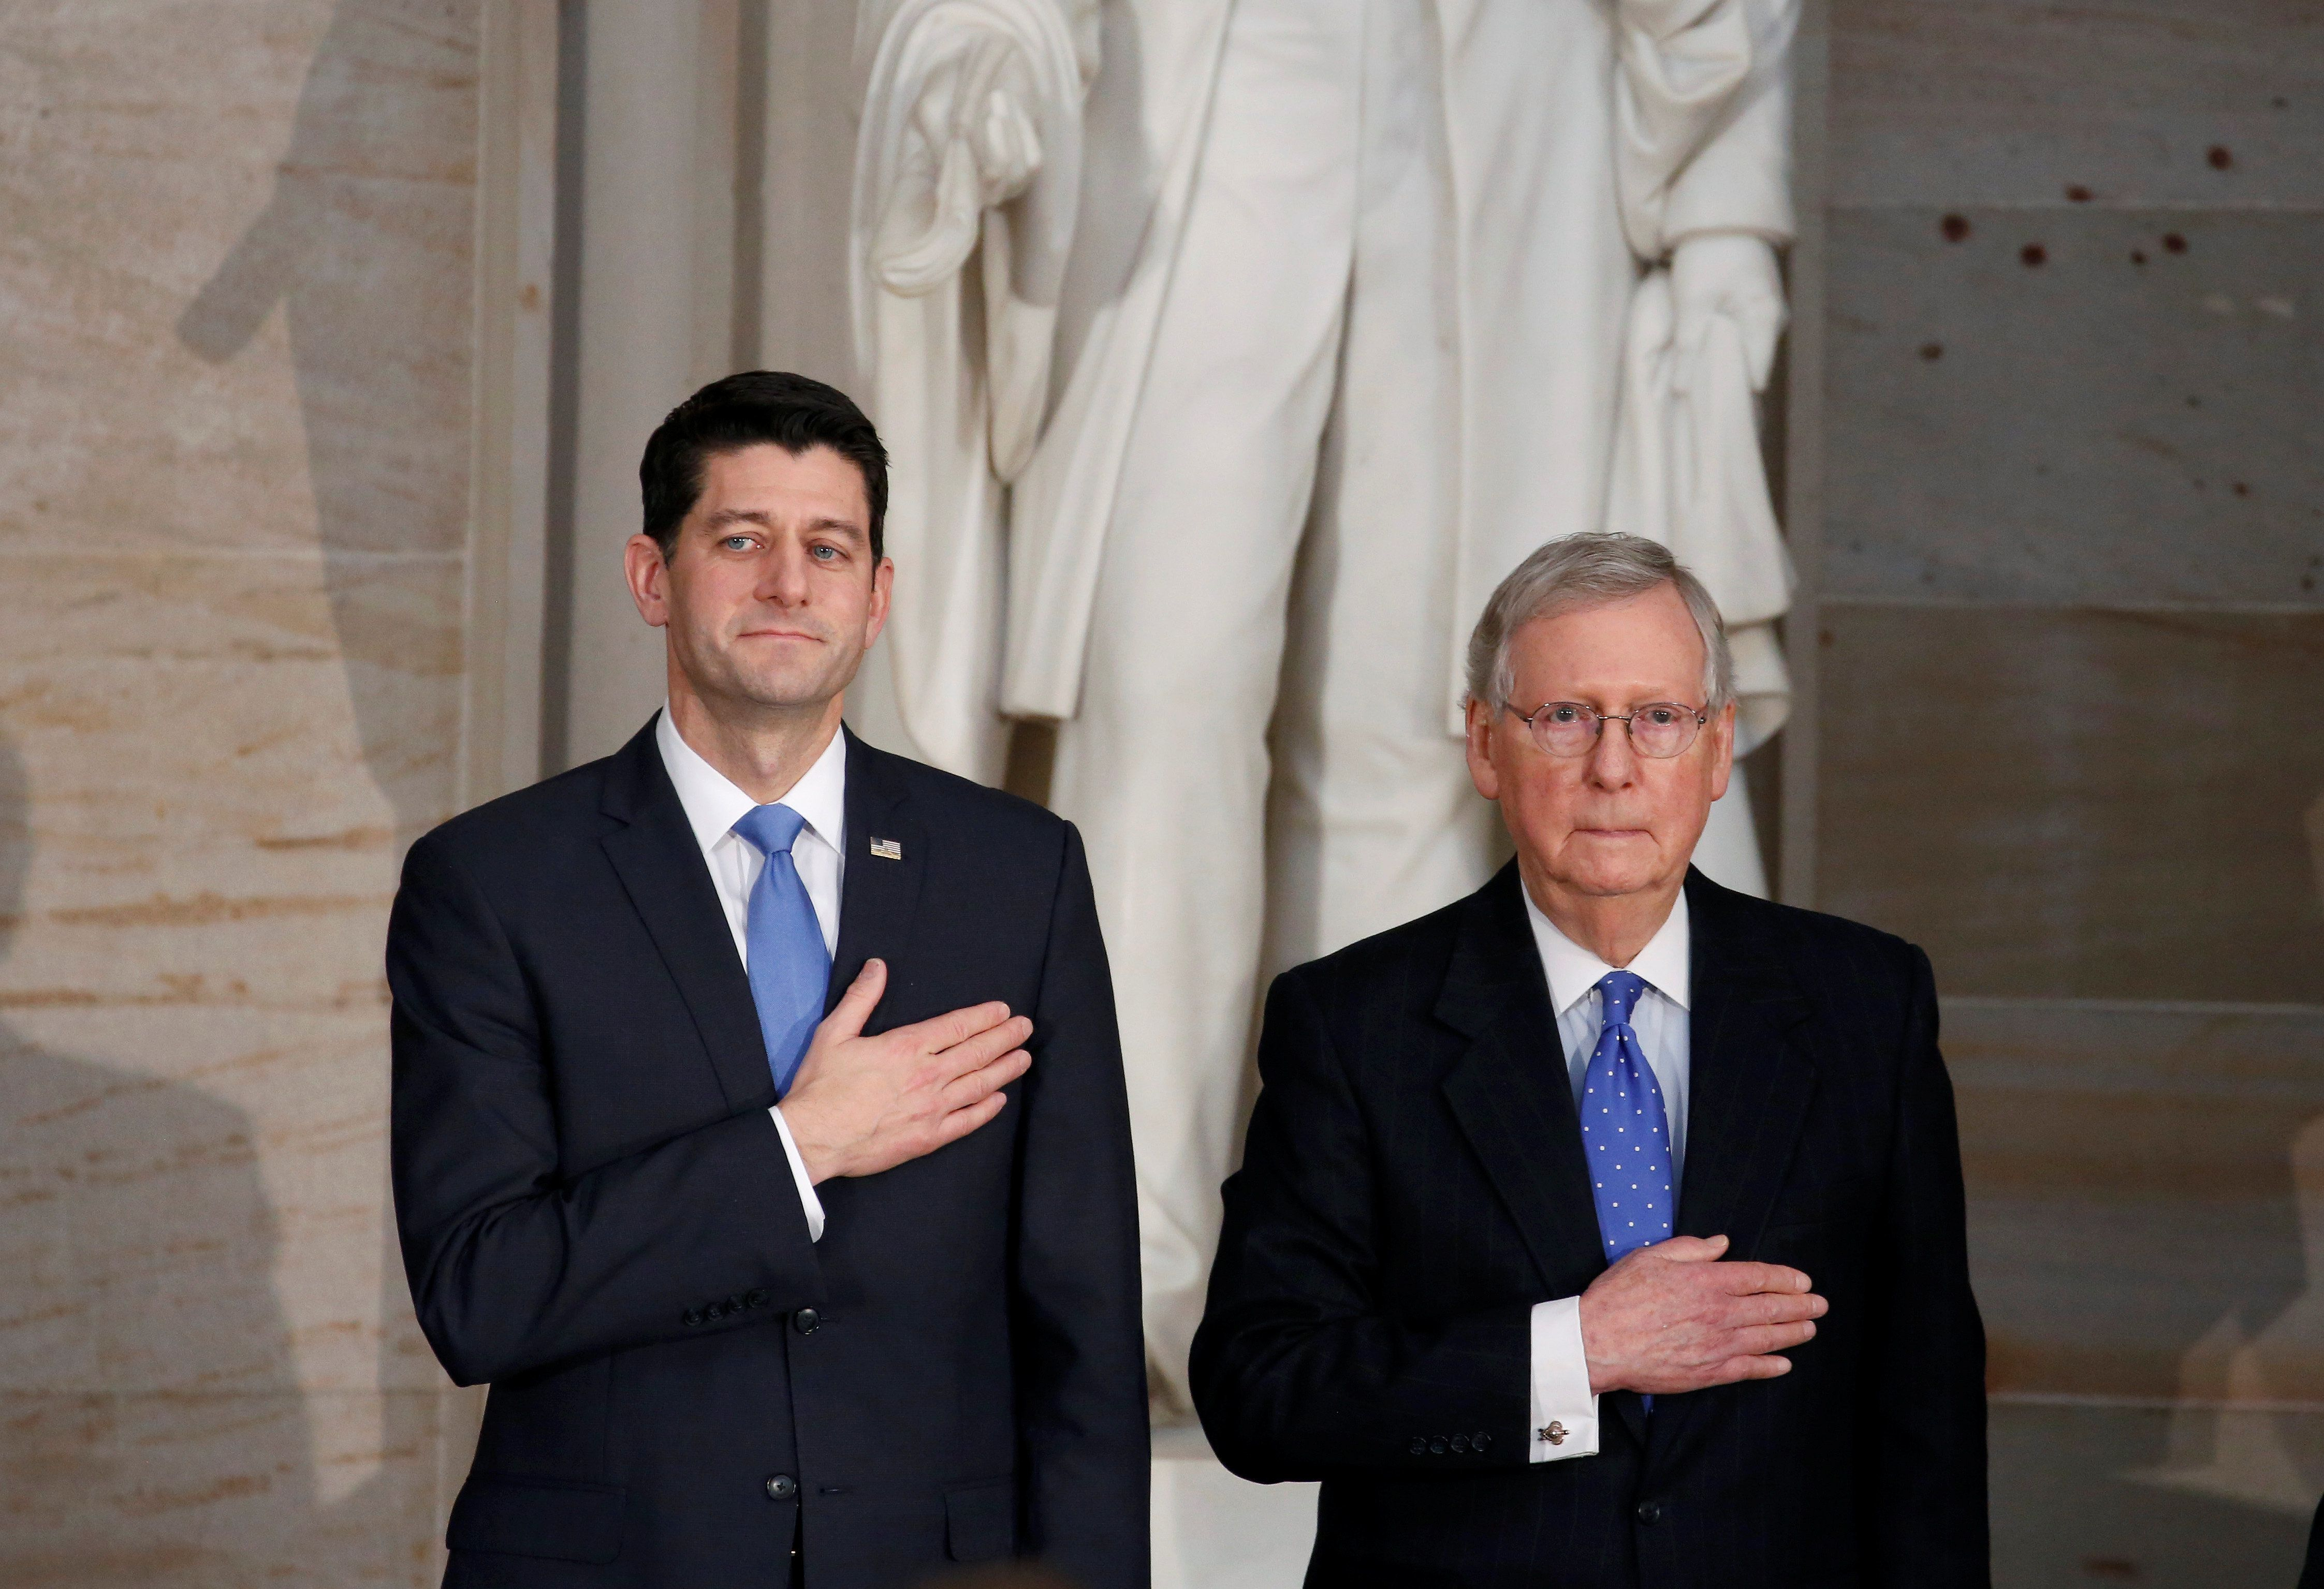 Speaker of the House Paul Ryan (R-WI) and Senate Majority Leader Mitch McConnell (R-KY) stand during a Congressional Gold Medal ceremony honoring former Senate majority leader Bob Dole (R-KS) on Capitol Hill in Washington, U.S., January 17, 2018.      REUTERS/Joshua Roberts